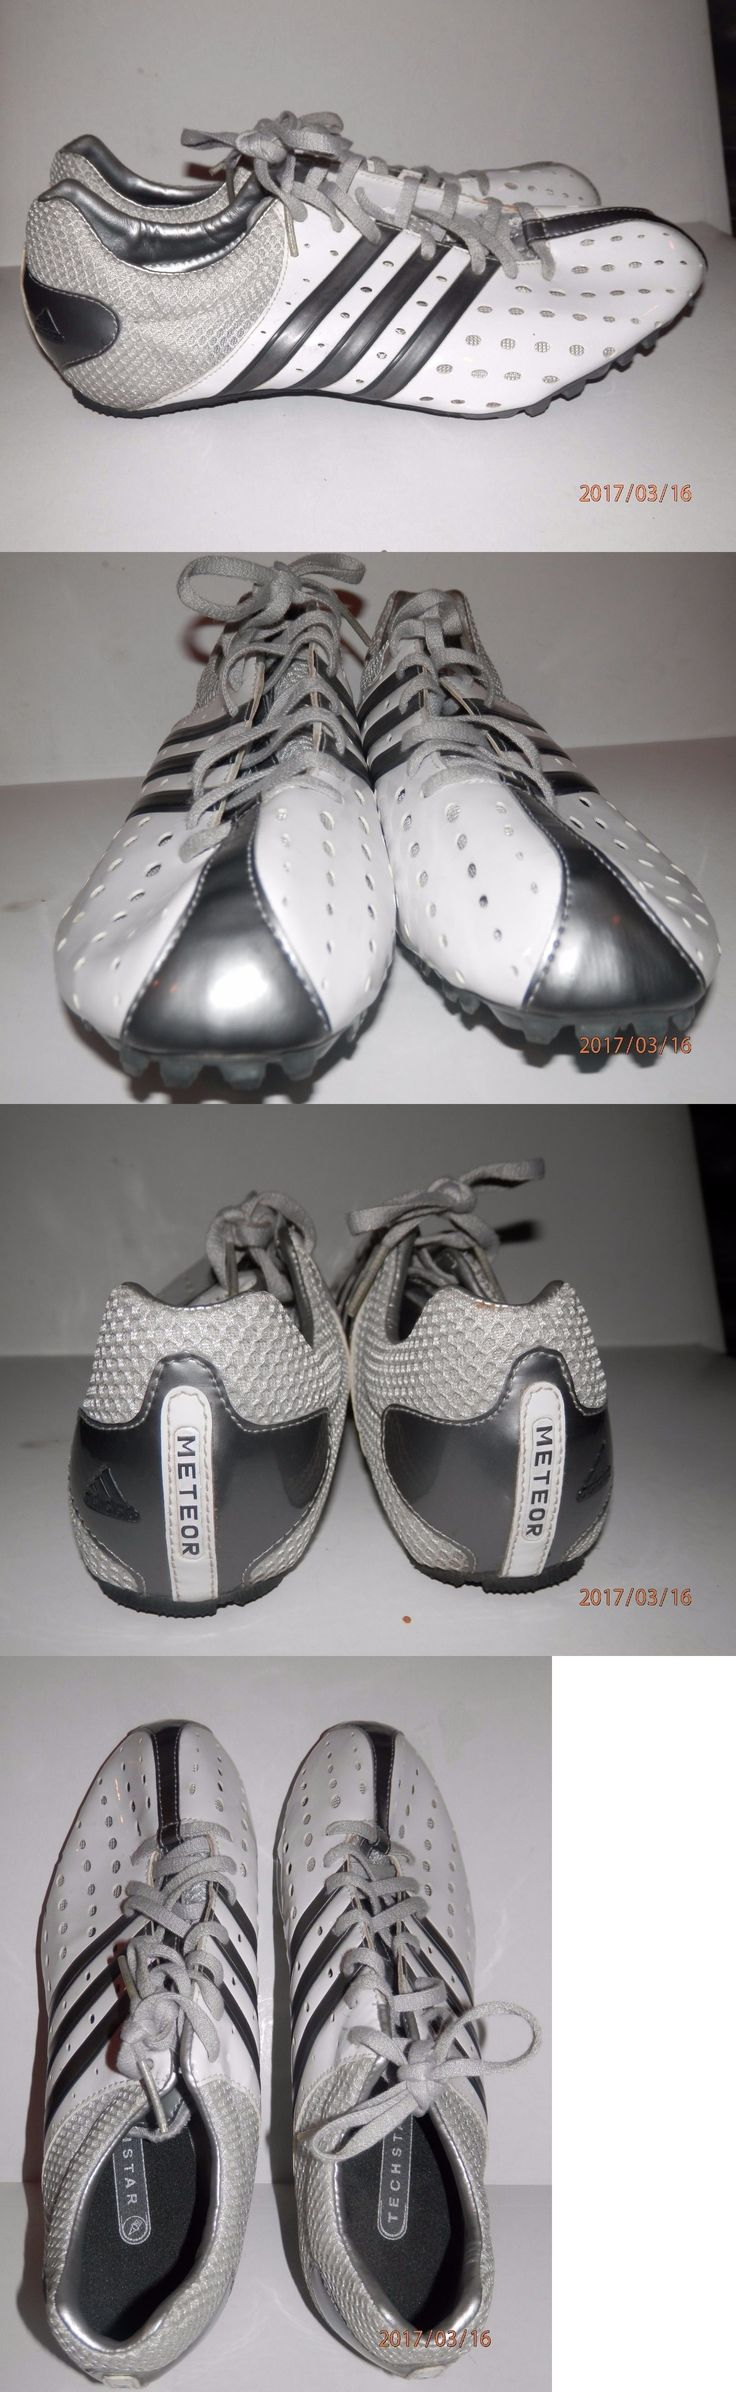 Track and Field 106981: Mens Adidas Techstar Meteor Track Sprint Cleat Shoes Size 9 White Silver Cleats -> BUY IT NOW ONLY: $35.0 on eBay!